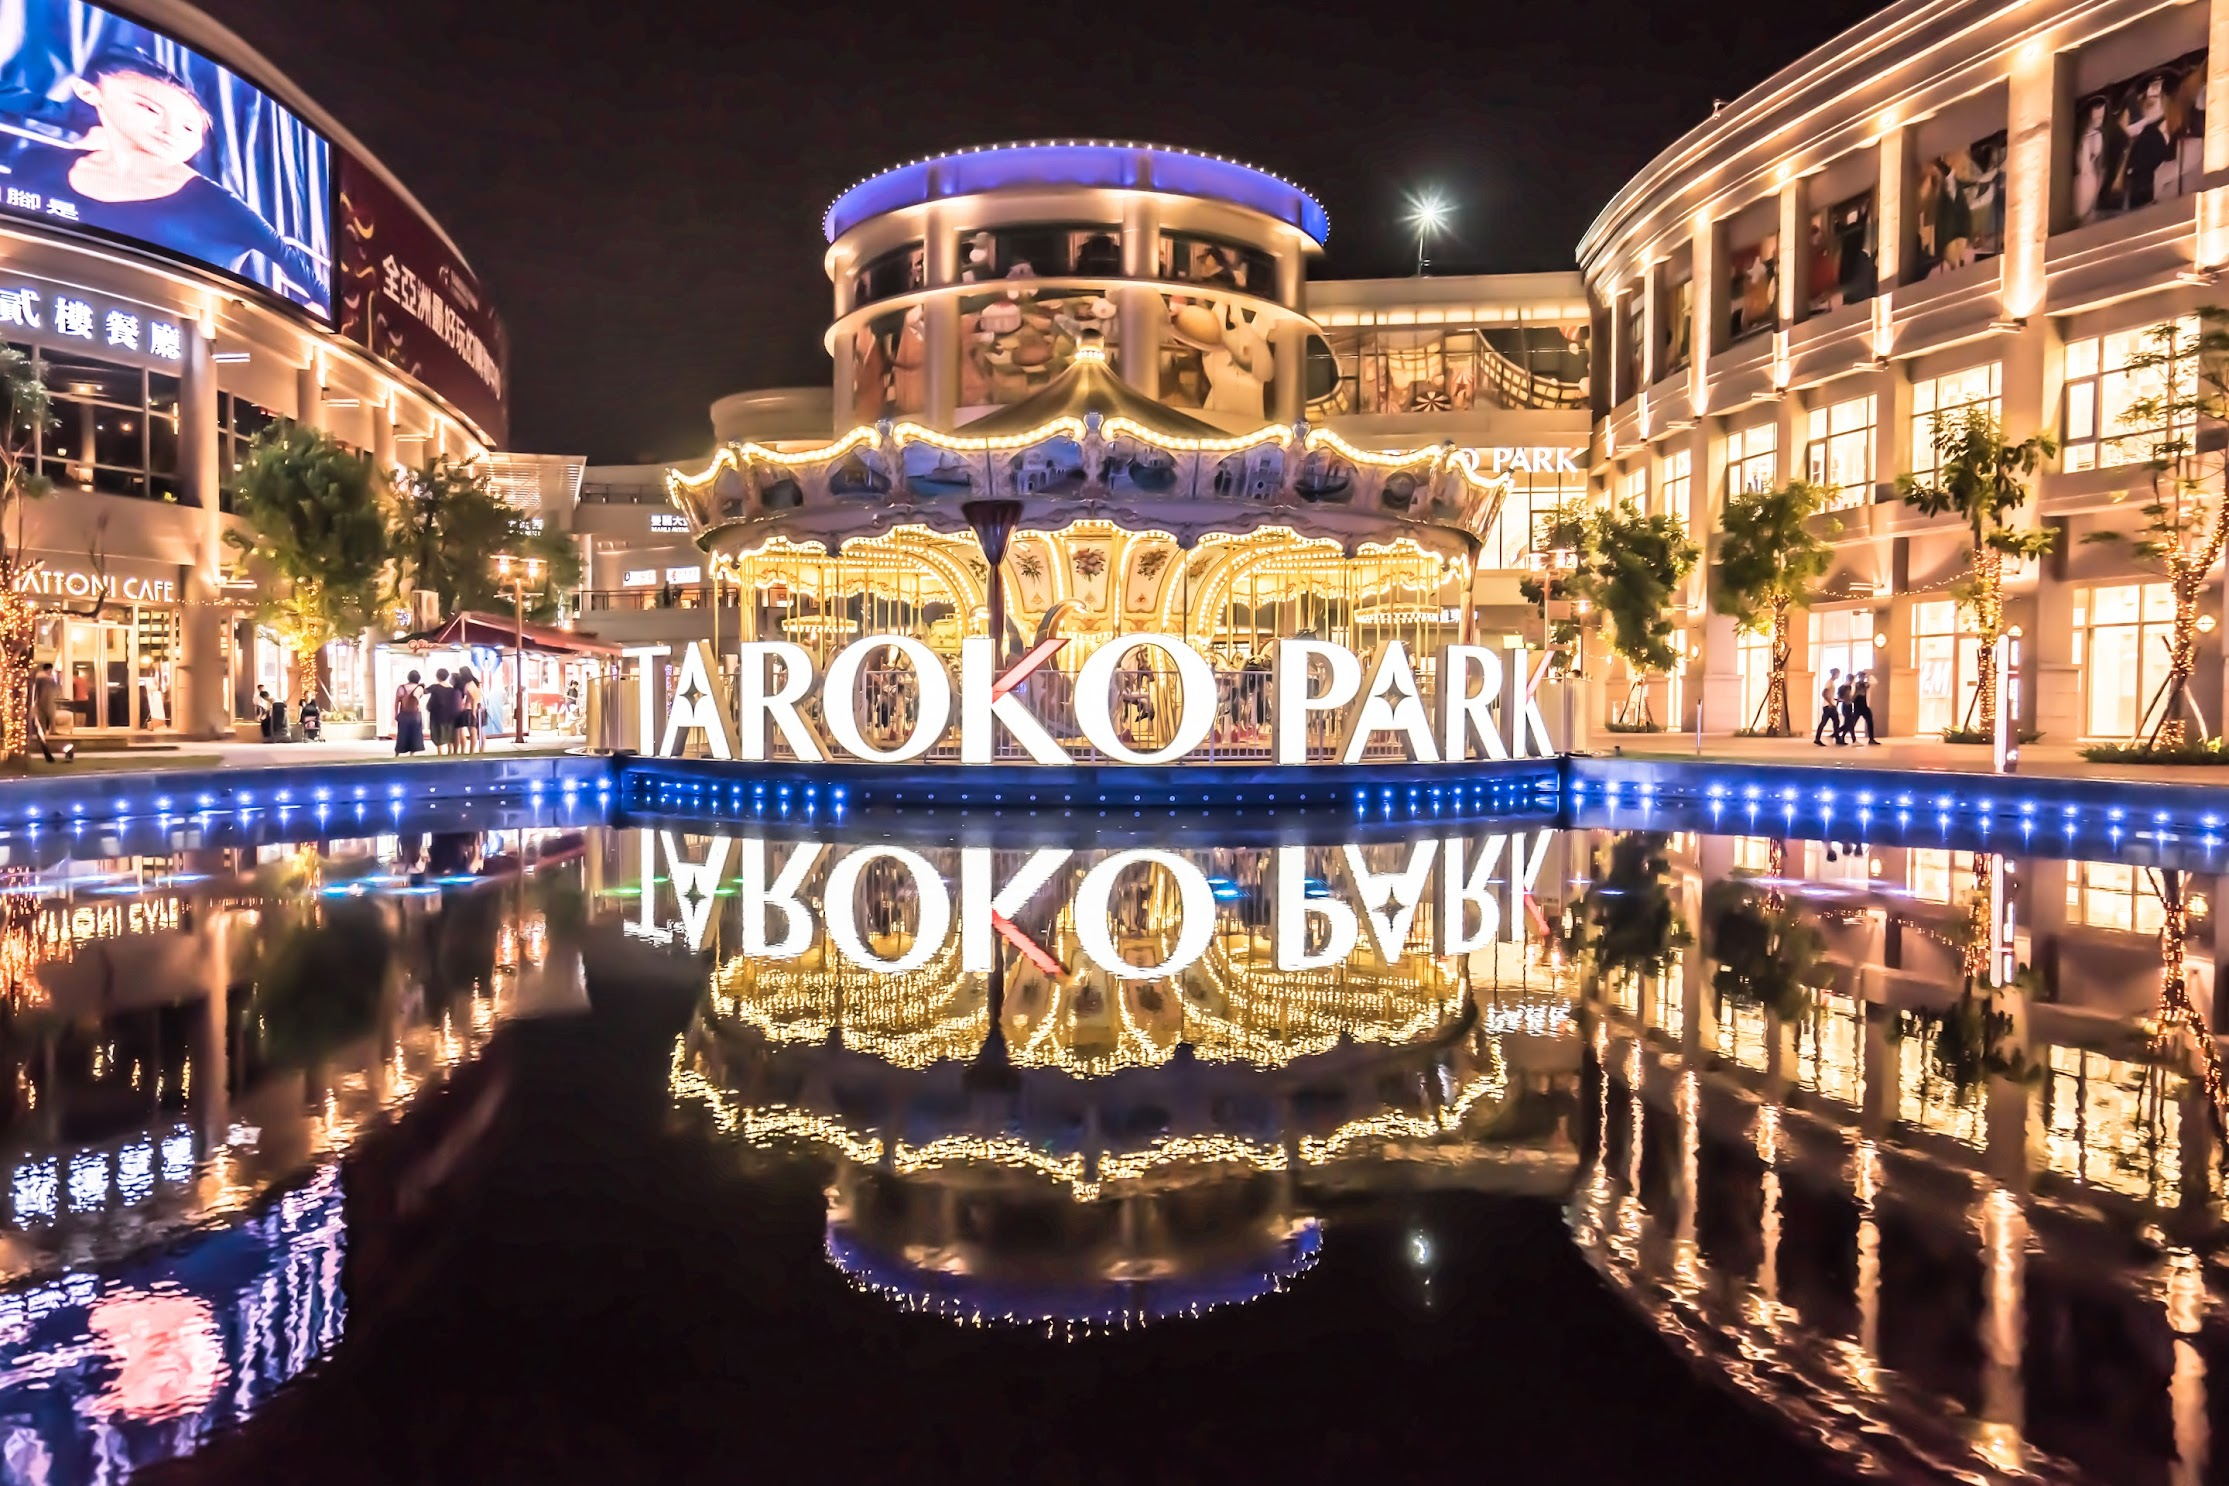 Taroko Park Light-up evening11